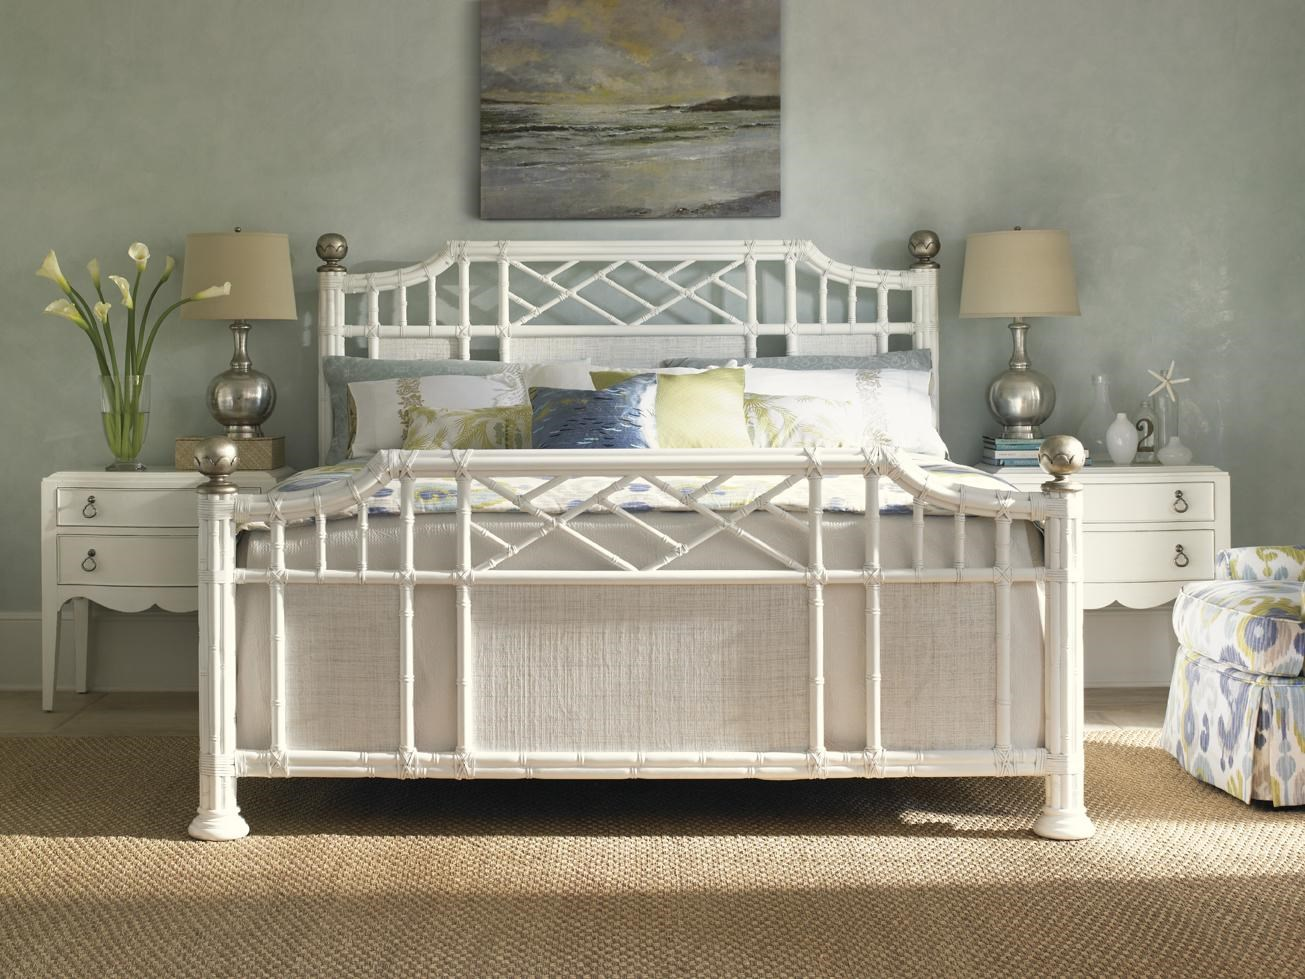 Ivory Key Pritchards Bay Panel Bed with Leather Wrapped Rattan and Silver Leaf Finials